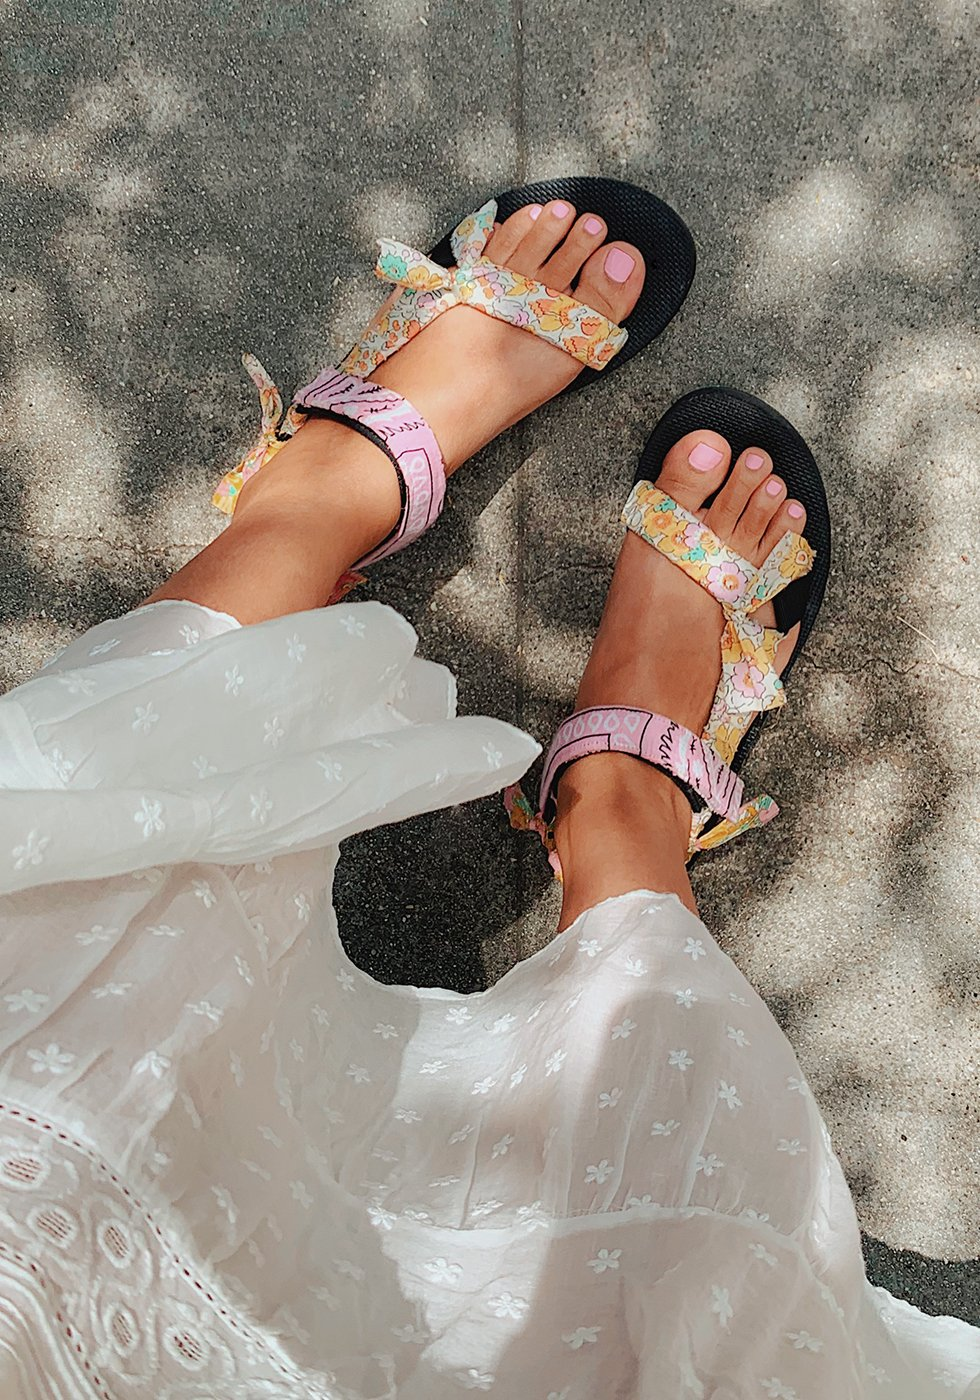 Diy Fabric Wrapped Teva Sandals Honestly Wtf Diy Sandals Teva Sandals Outfit Teva Sandals